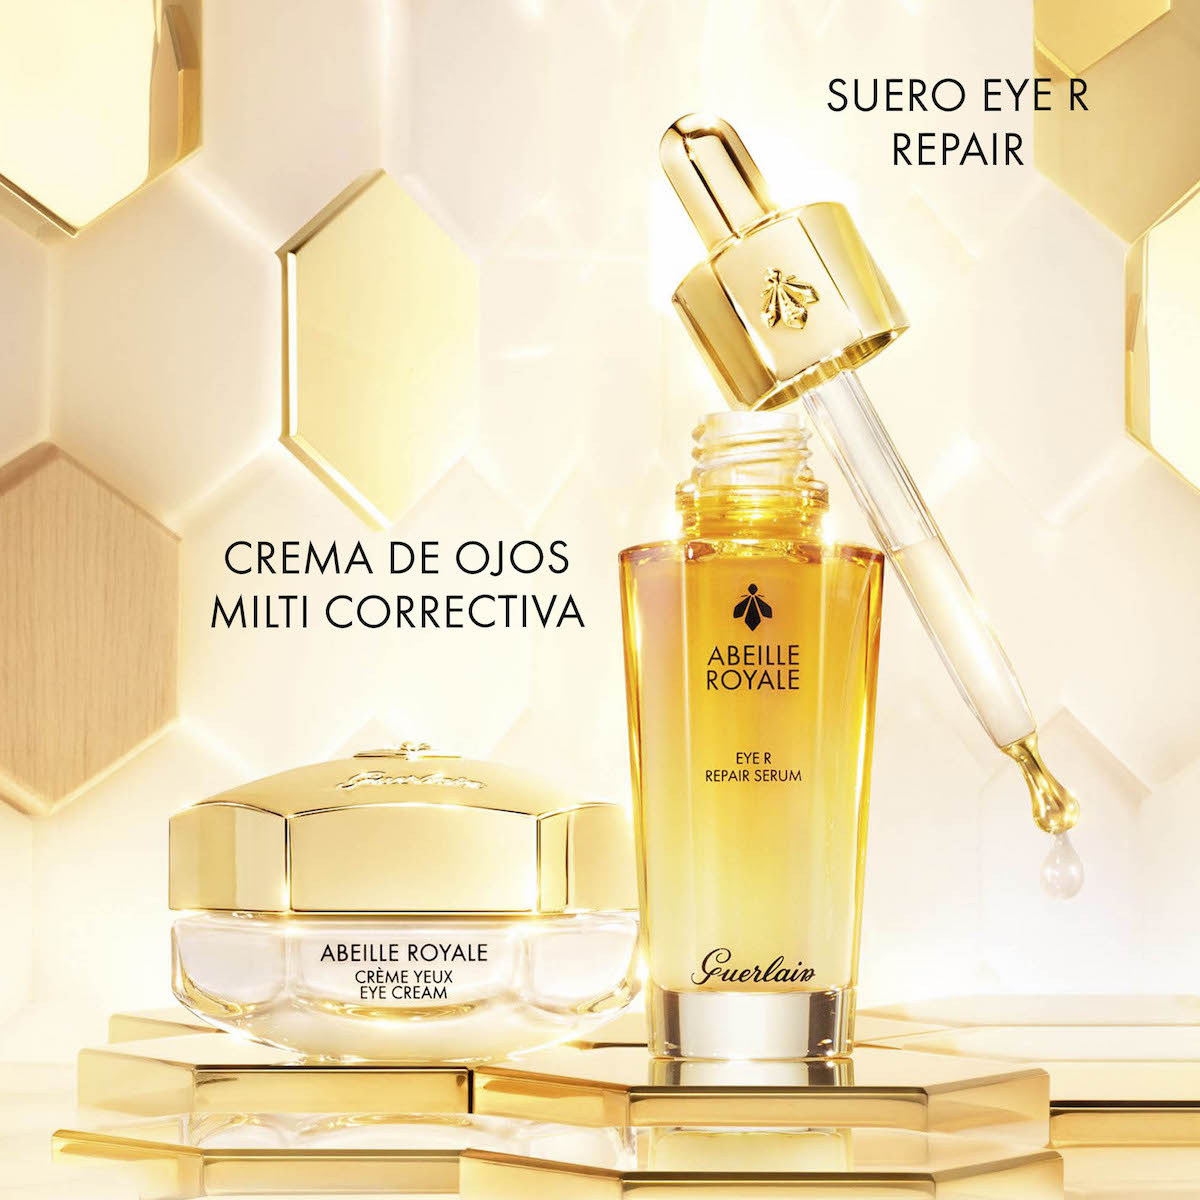 SUERO REPARADOR DE OJOS ABEILLE ROYAL EYE